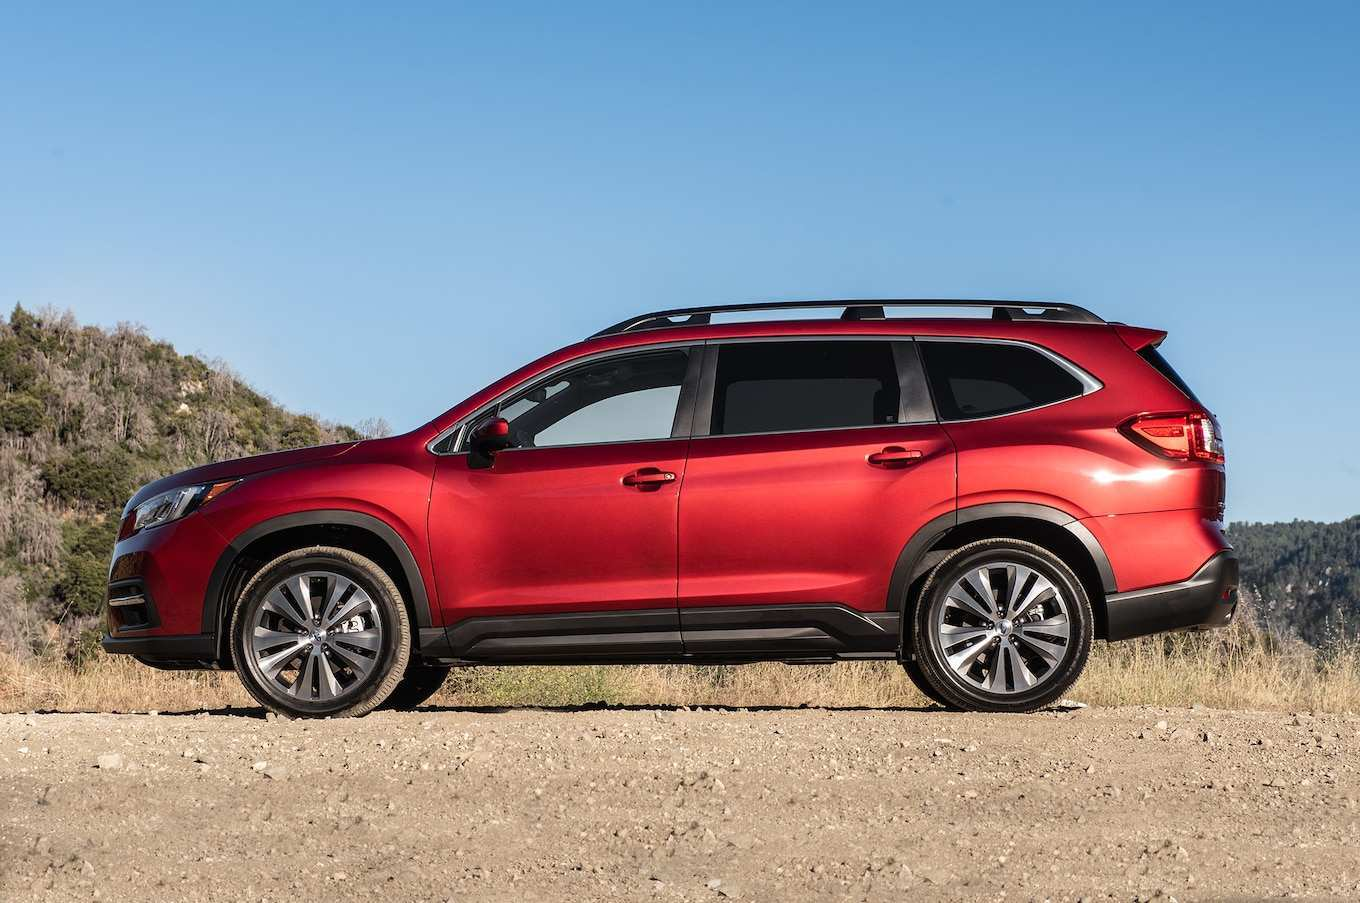 32 The 2019 Subaru Ascent Dimensions Redesign And Review